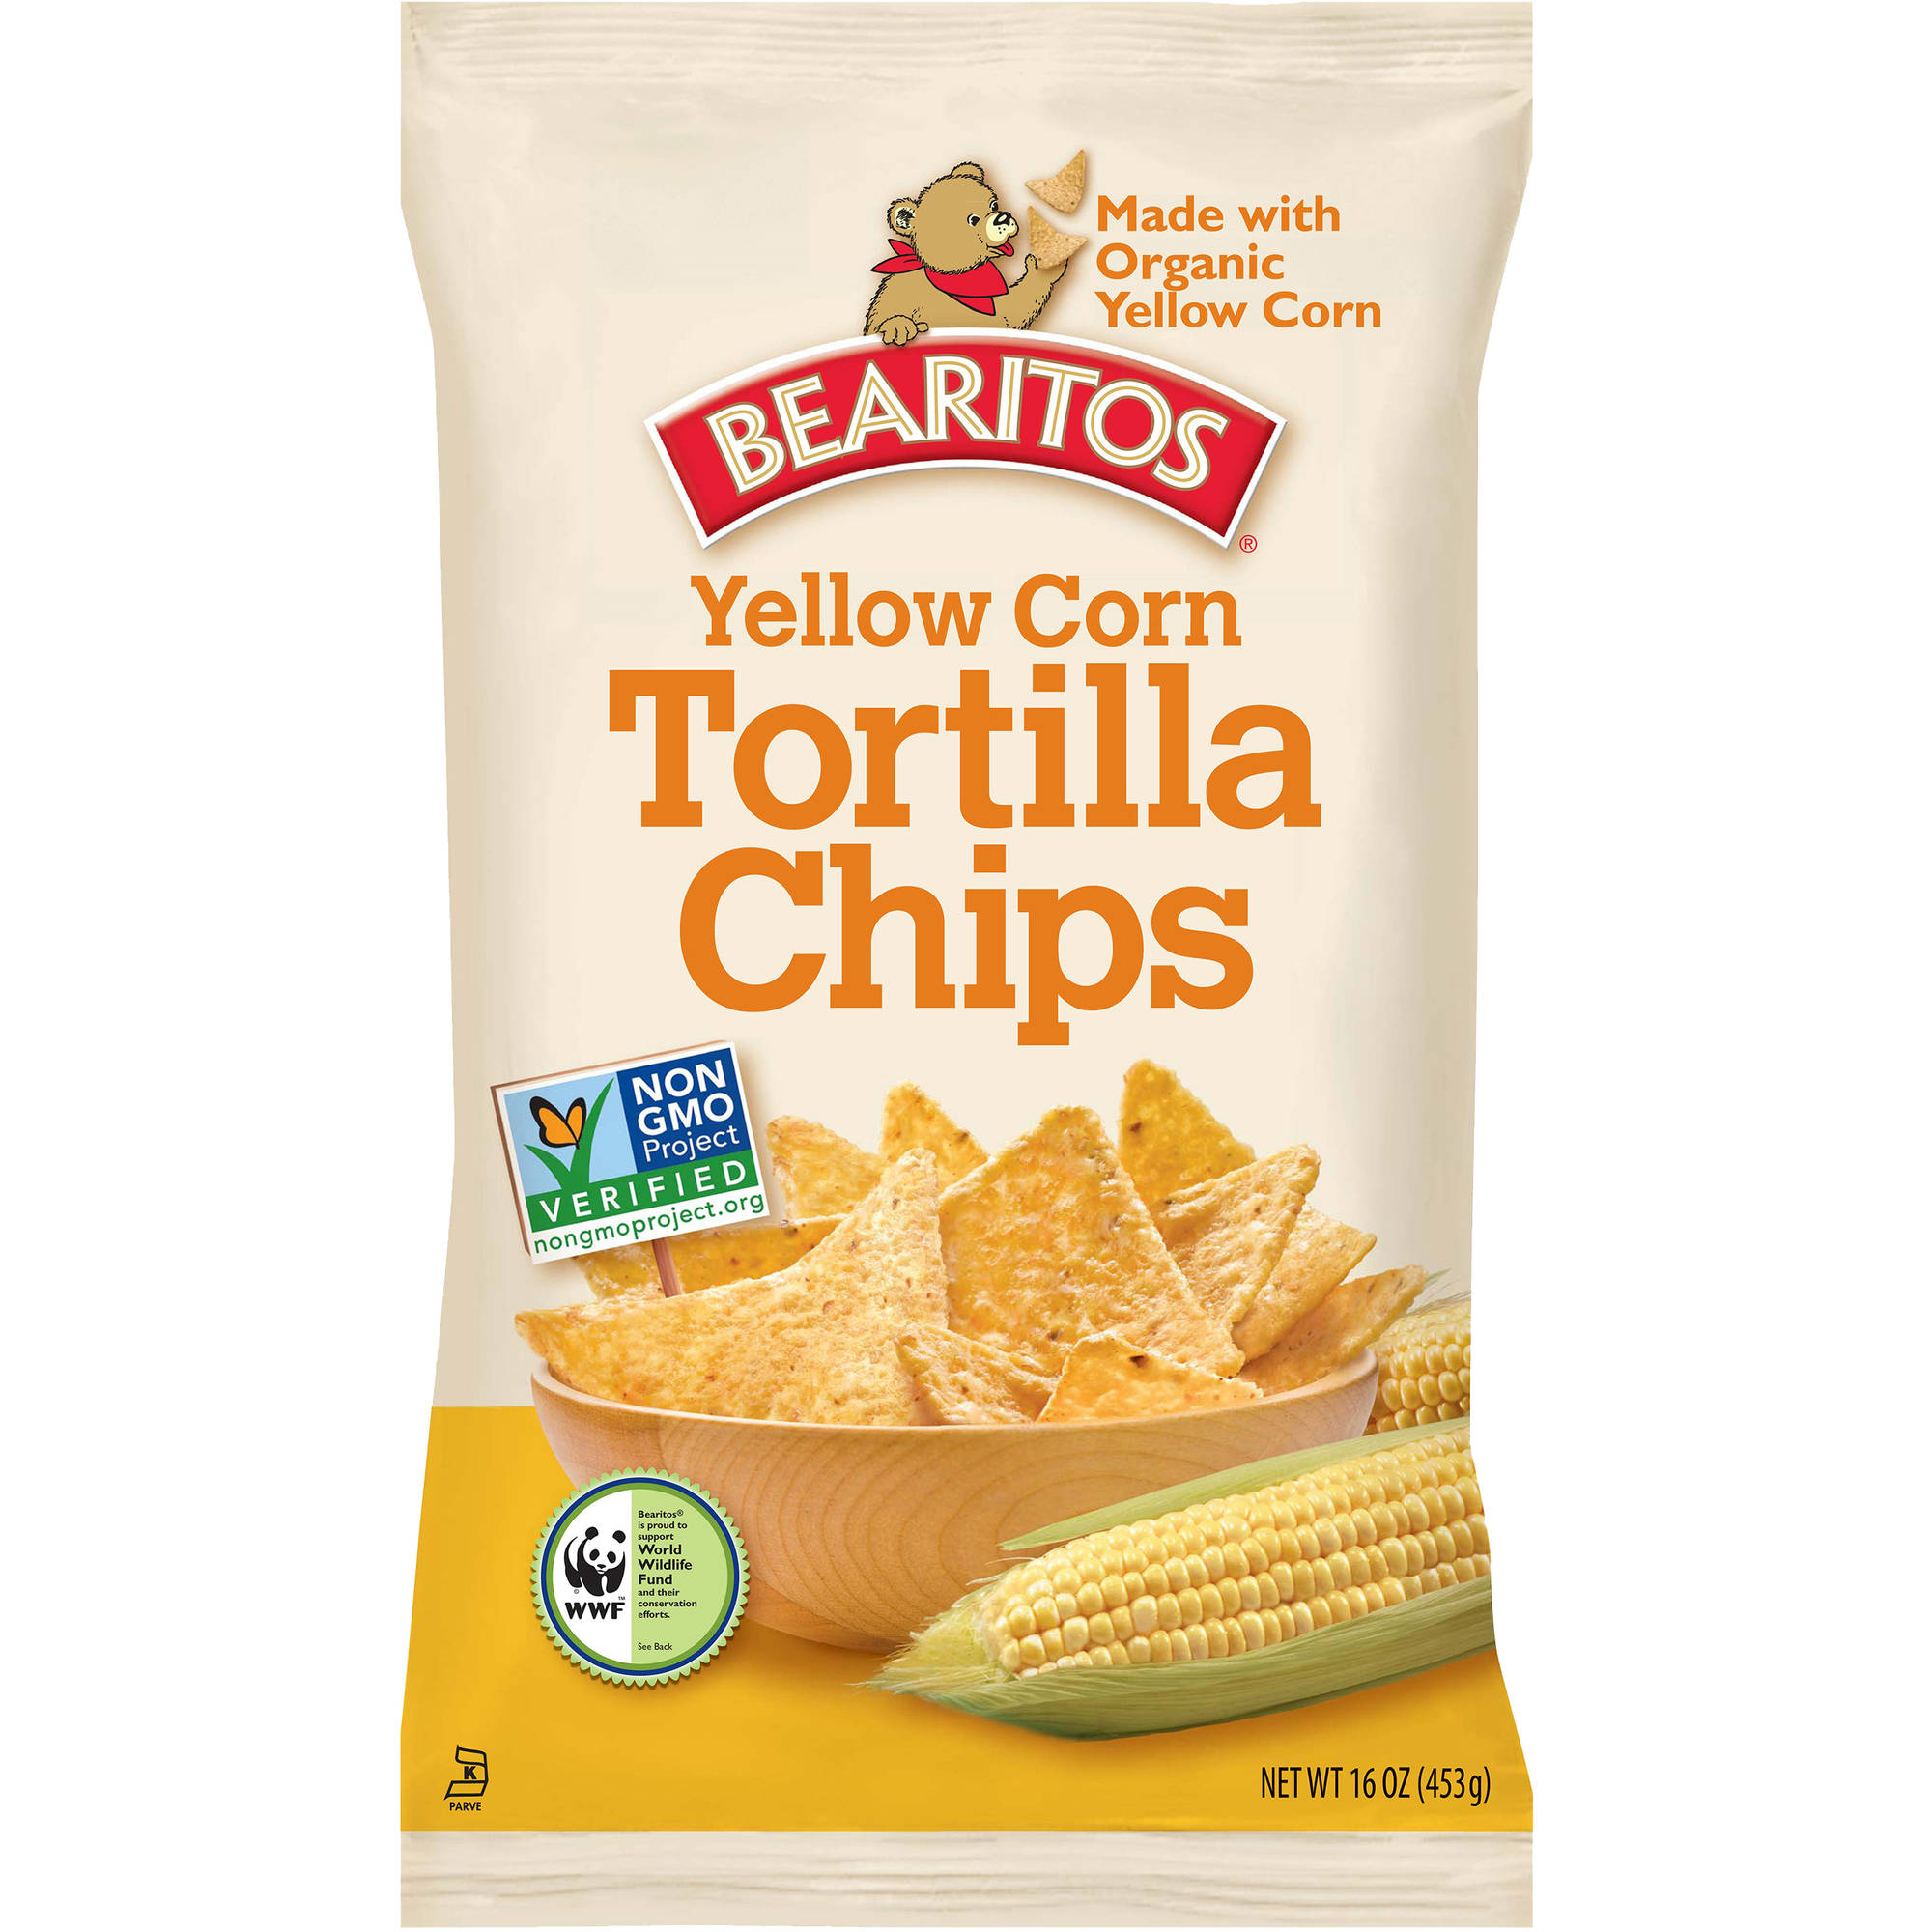 Bearitos Yellow Corn Tortilla Chips, 16 oz